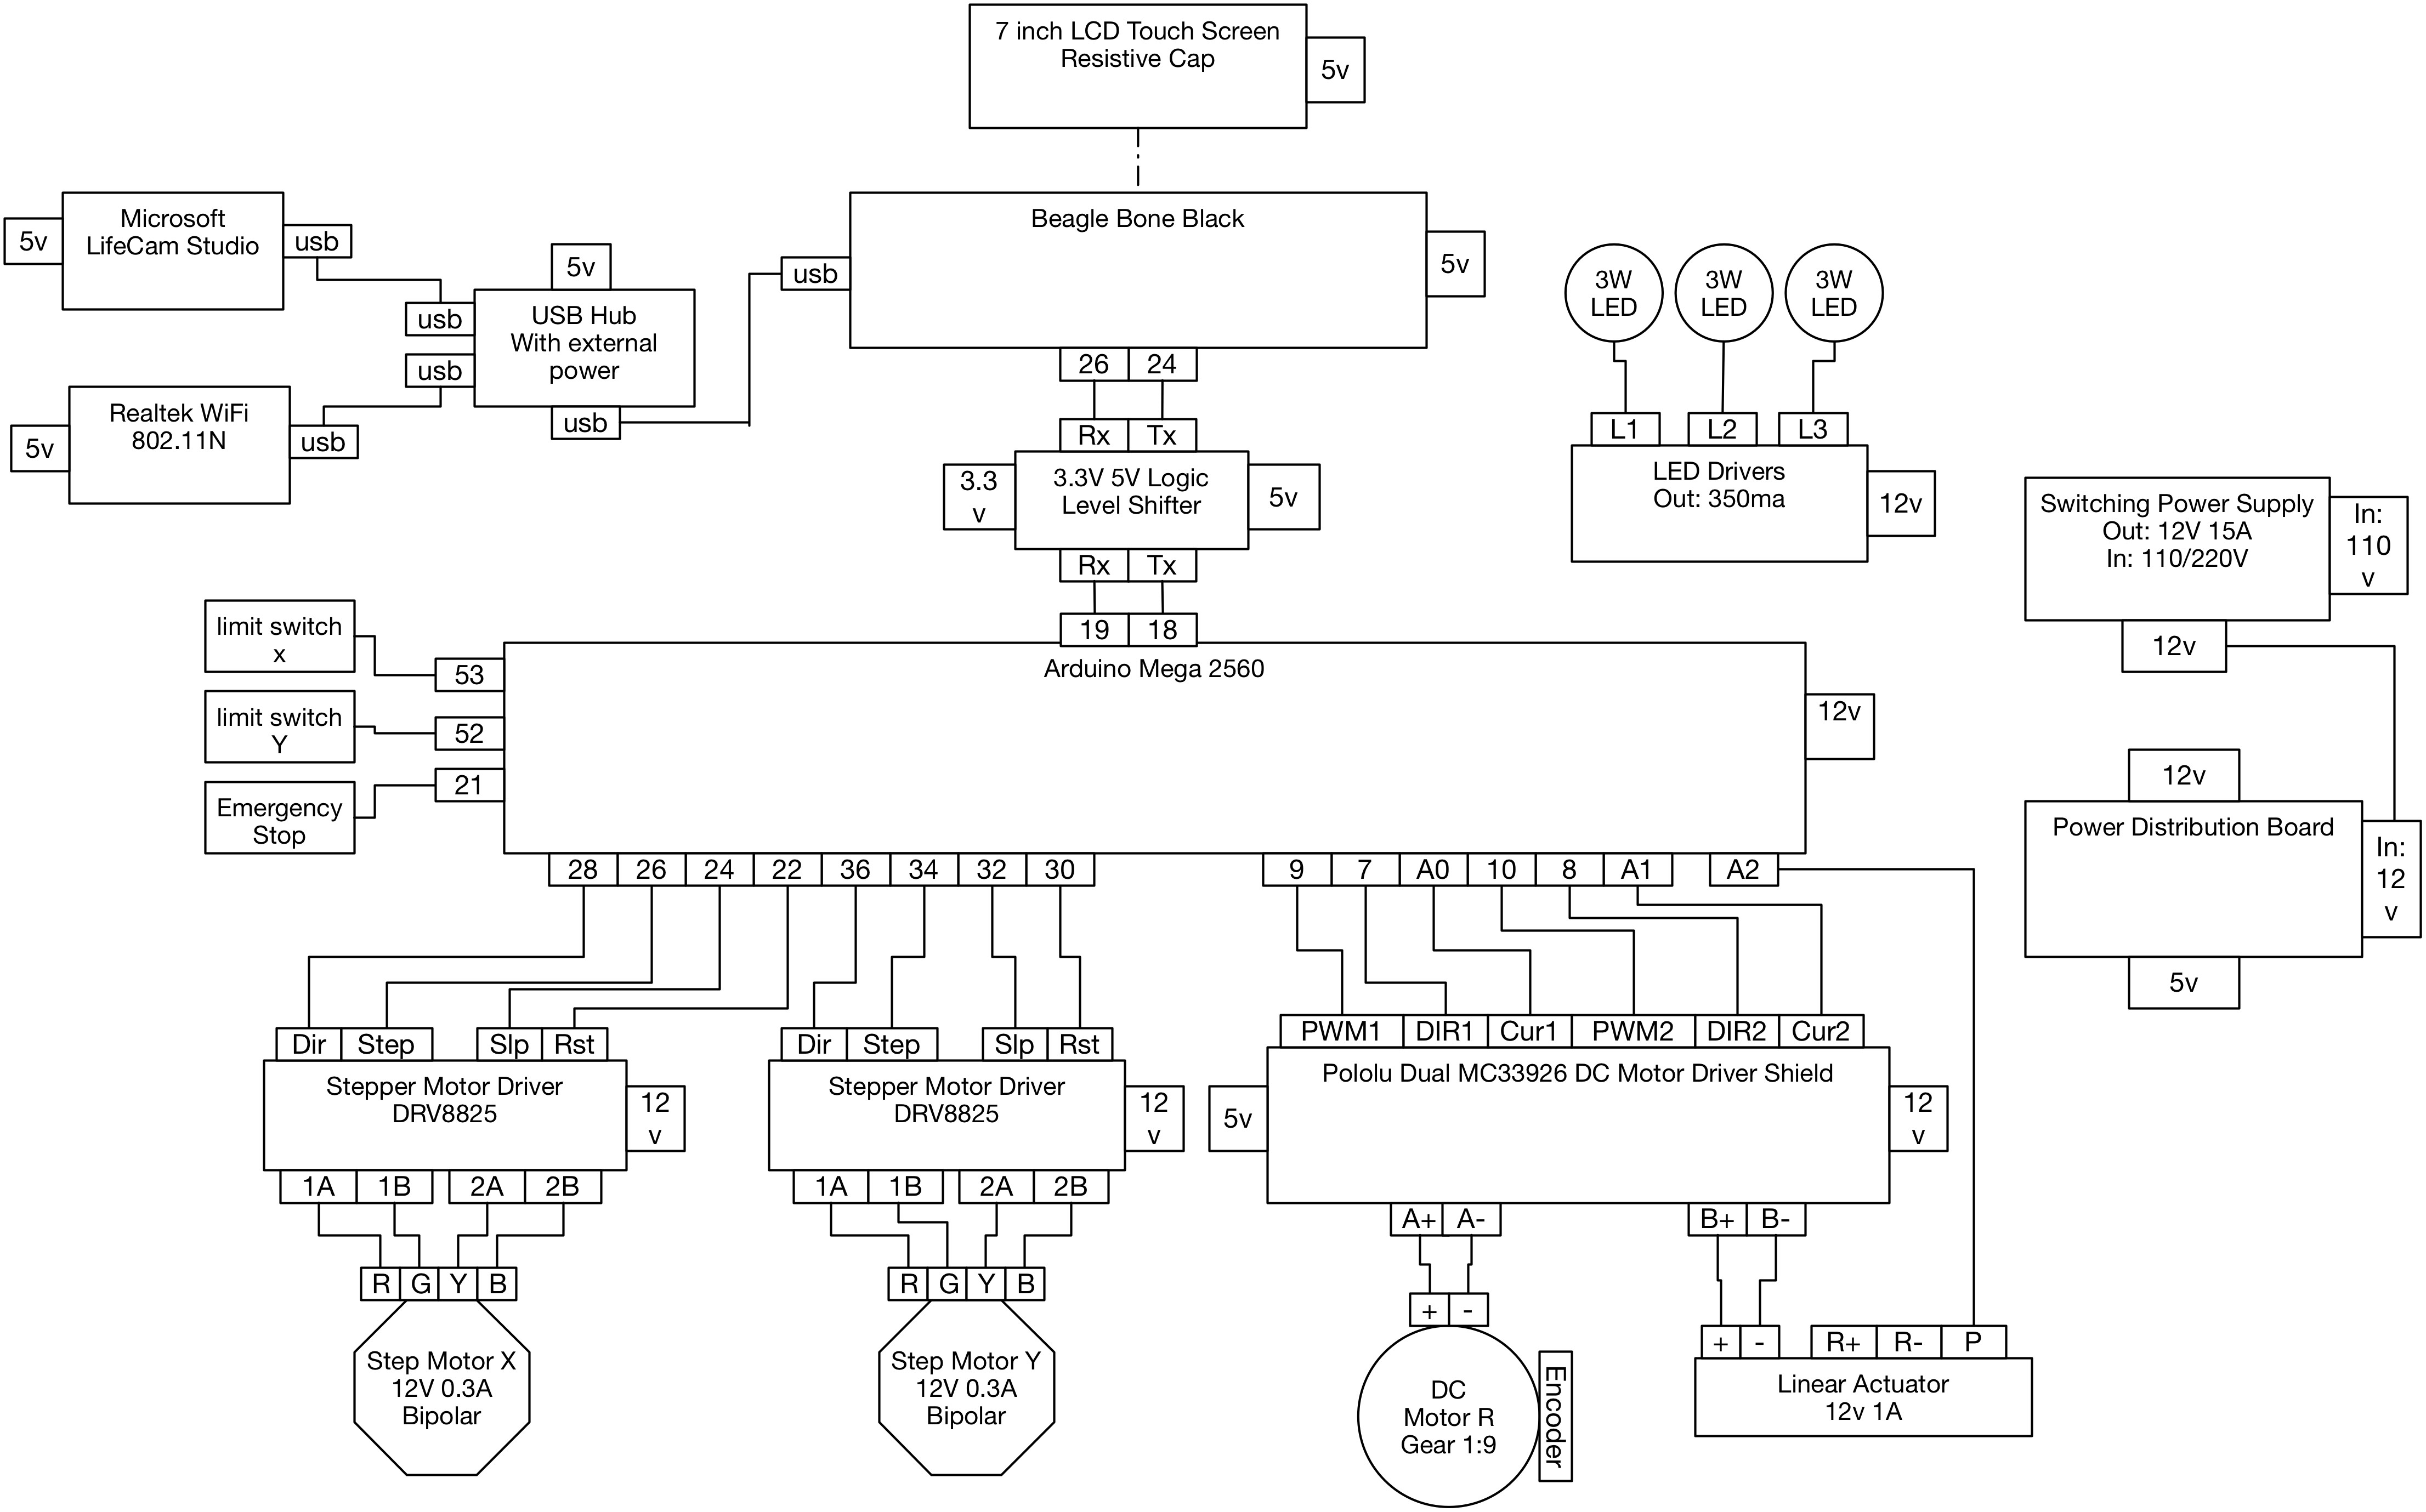 Drawings, Schematics, And Datasheets